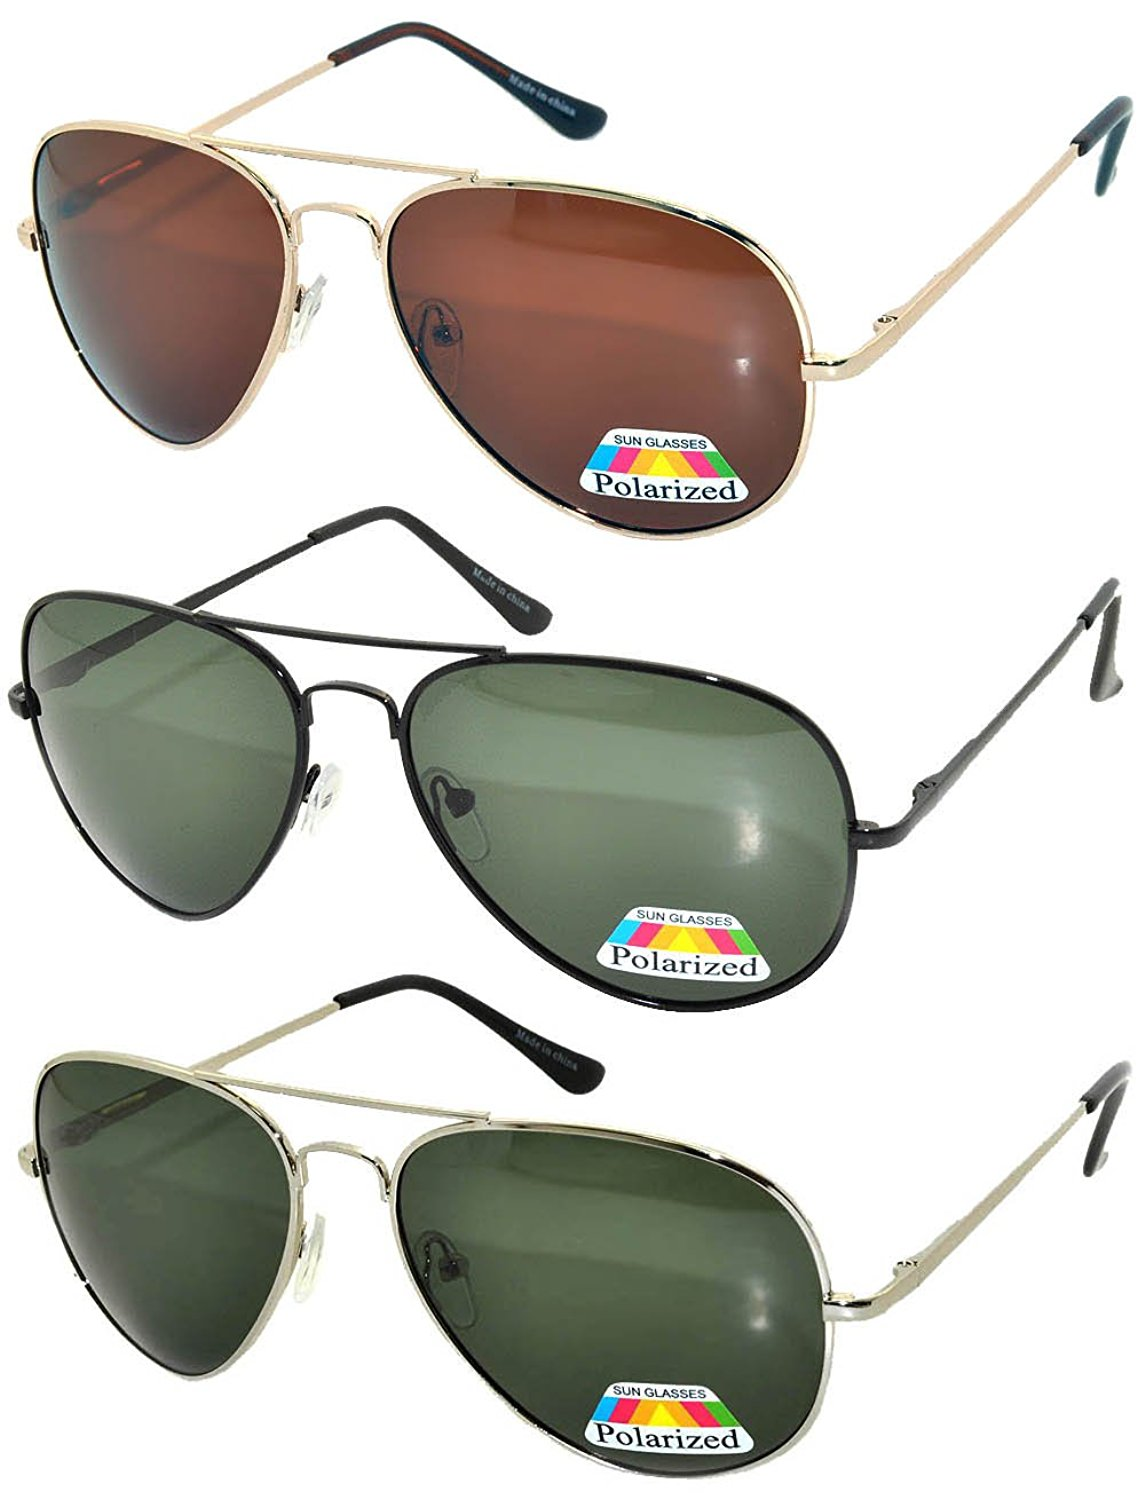 554f183c279 Get Quotations · Set of 3 Classic Aviator Polarized Lens Sunglasses Colored  Metal Frame Spring Hinge (3 Pairs